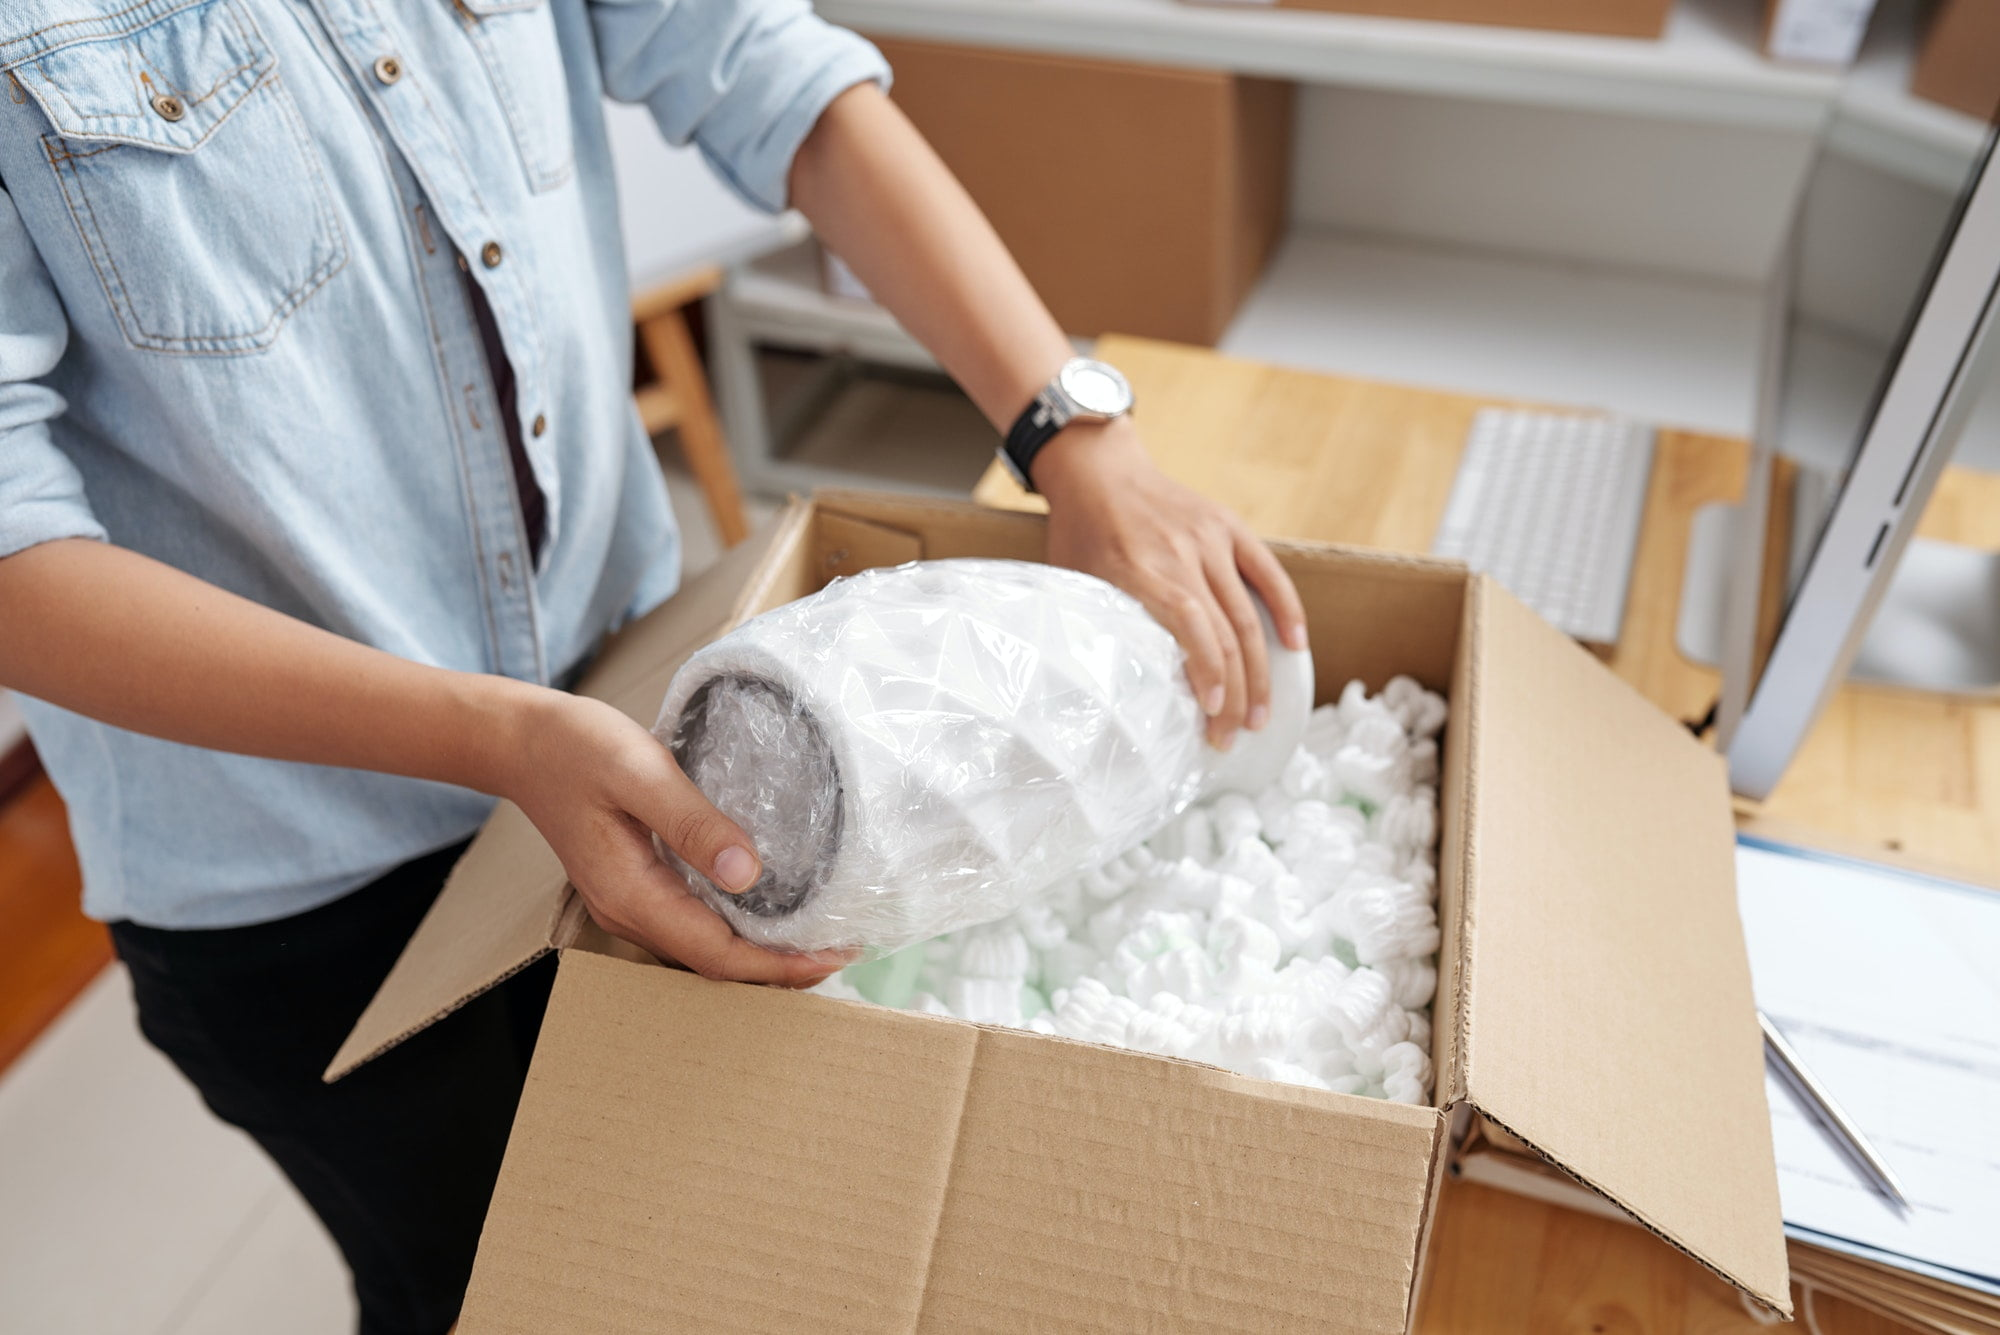 5 Packing mistakes and how to avoid them